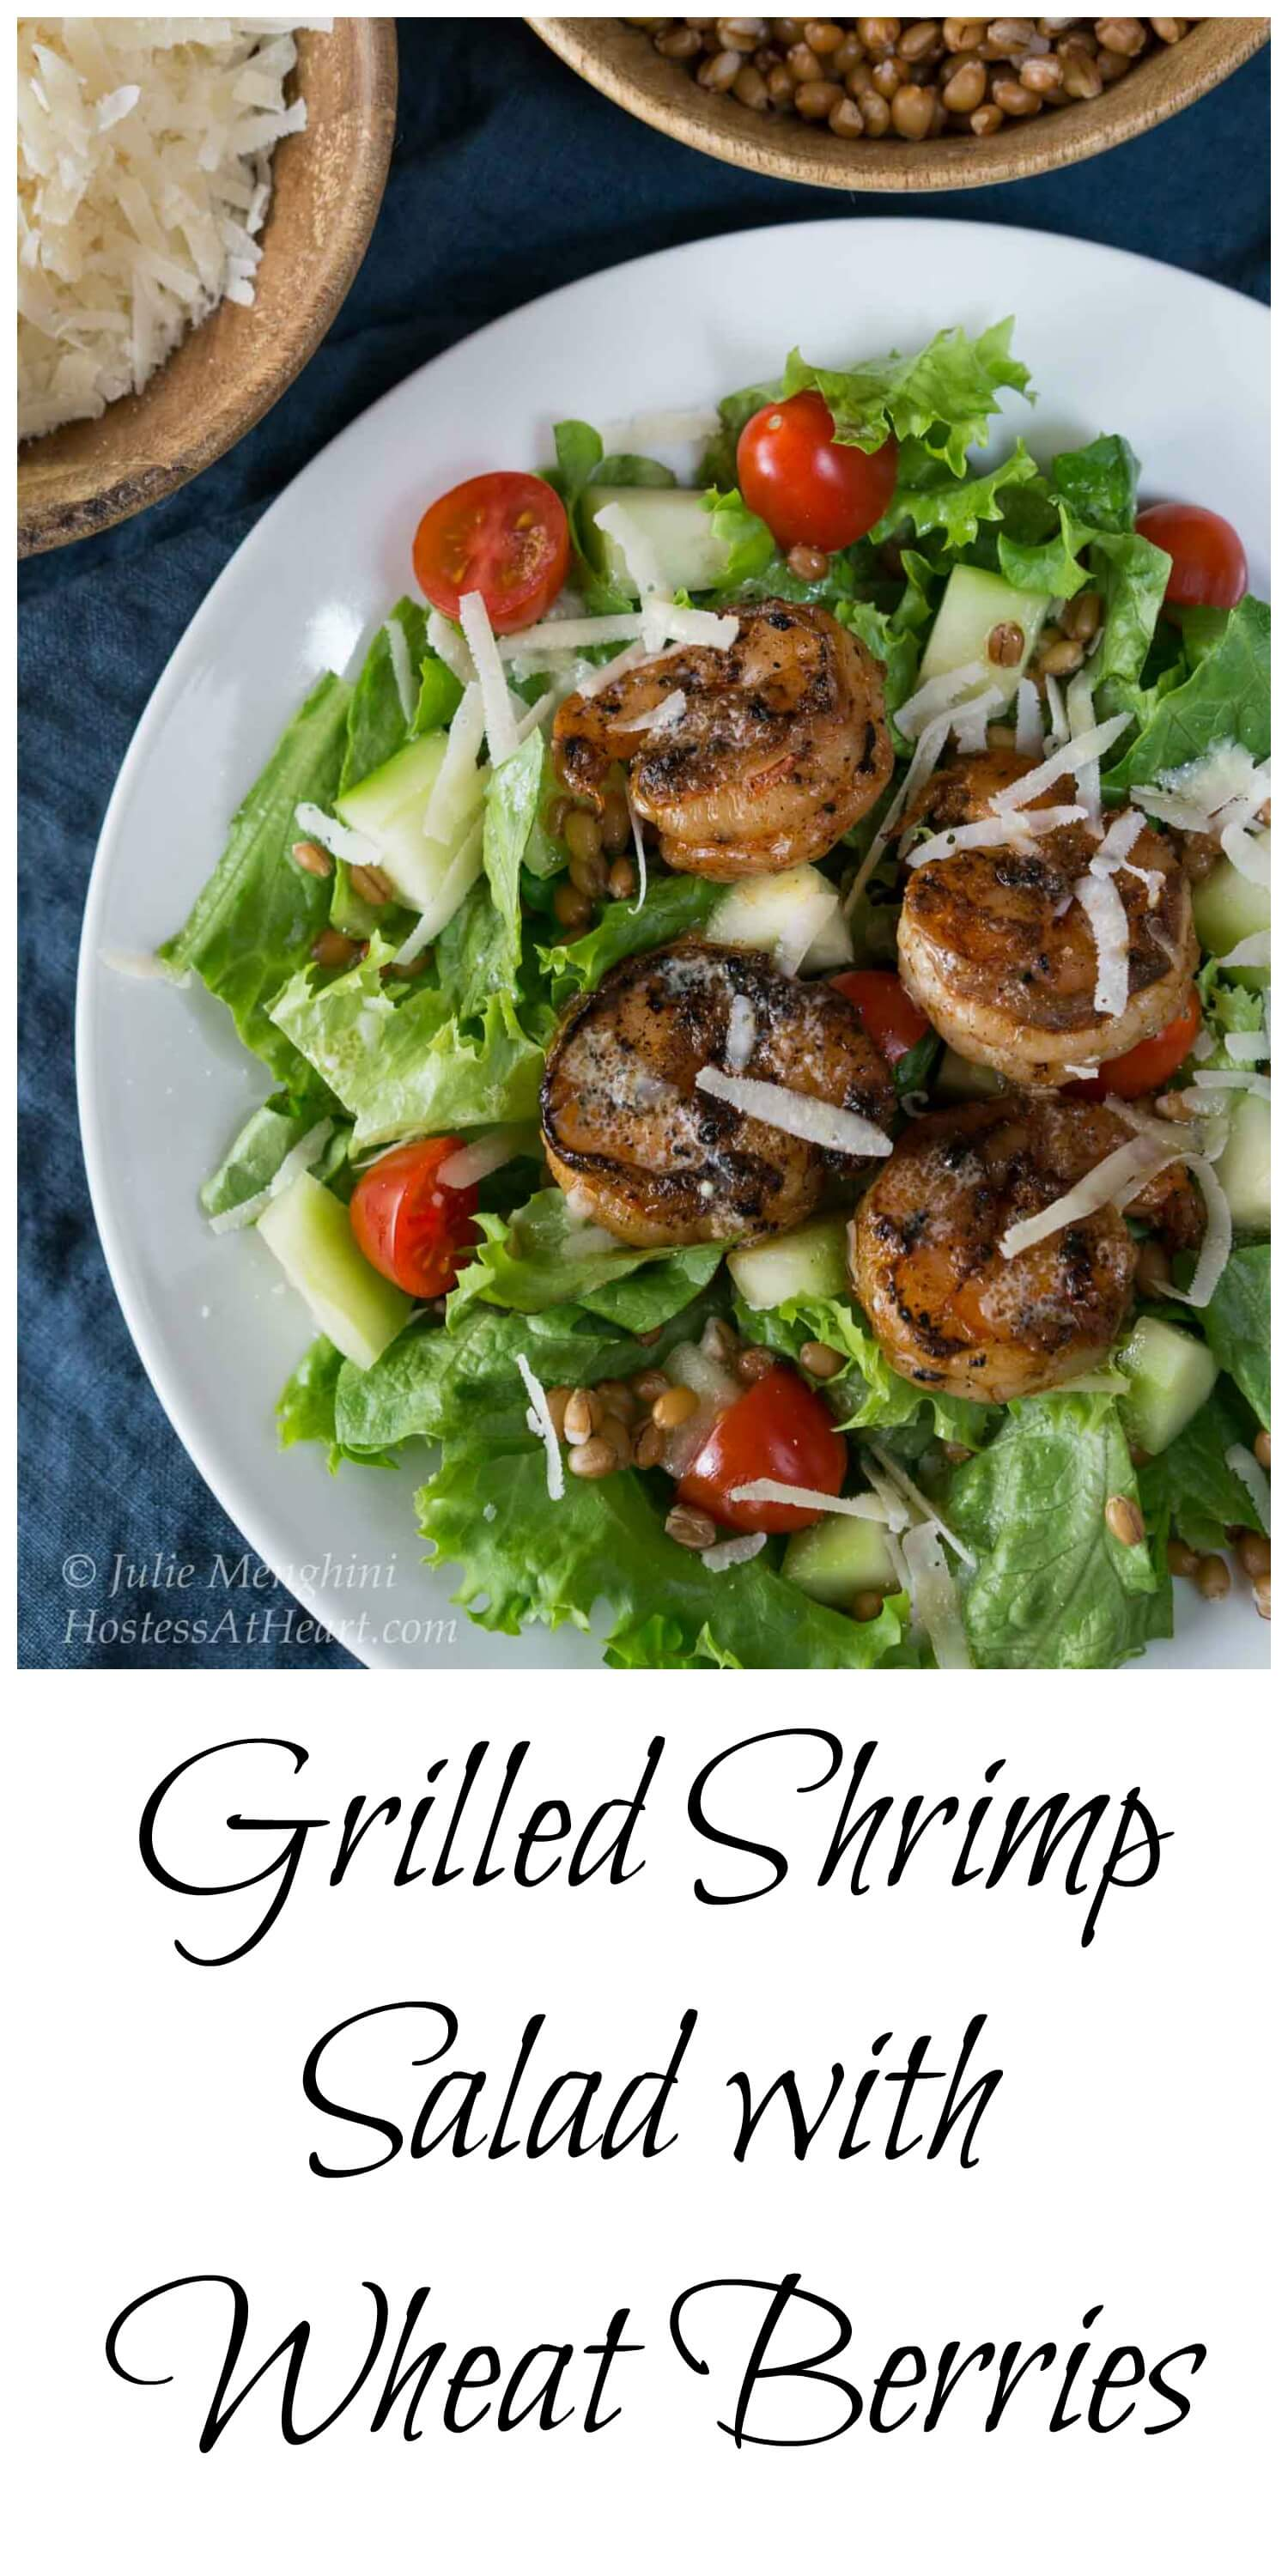 Grilled Shrimp Salad with Wheat Berries will not leave you hungry. It's filling, good for you and delicious. #healthyfood #whatsfordinner #Shrimp #shrimpsalad   Healthy Salad   Salad with shrimp   healthy salad